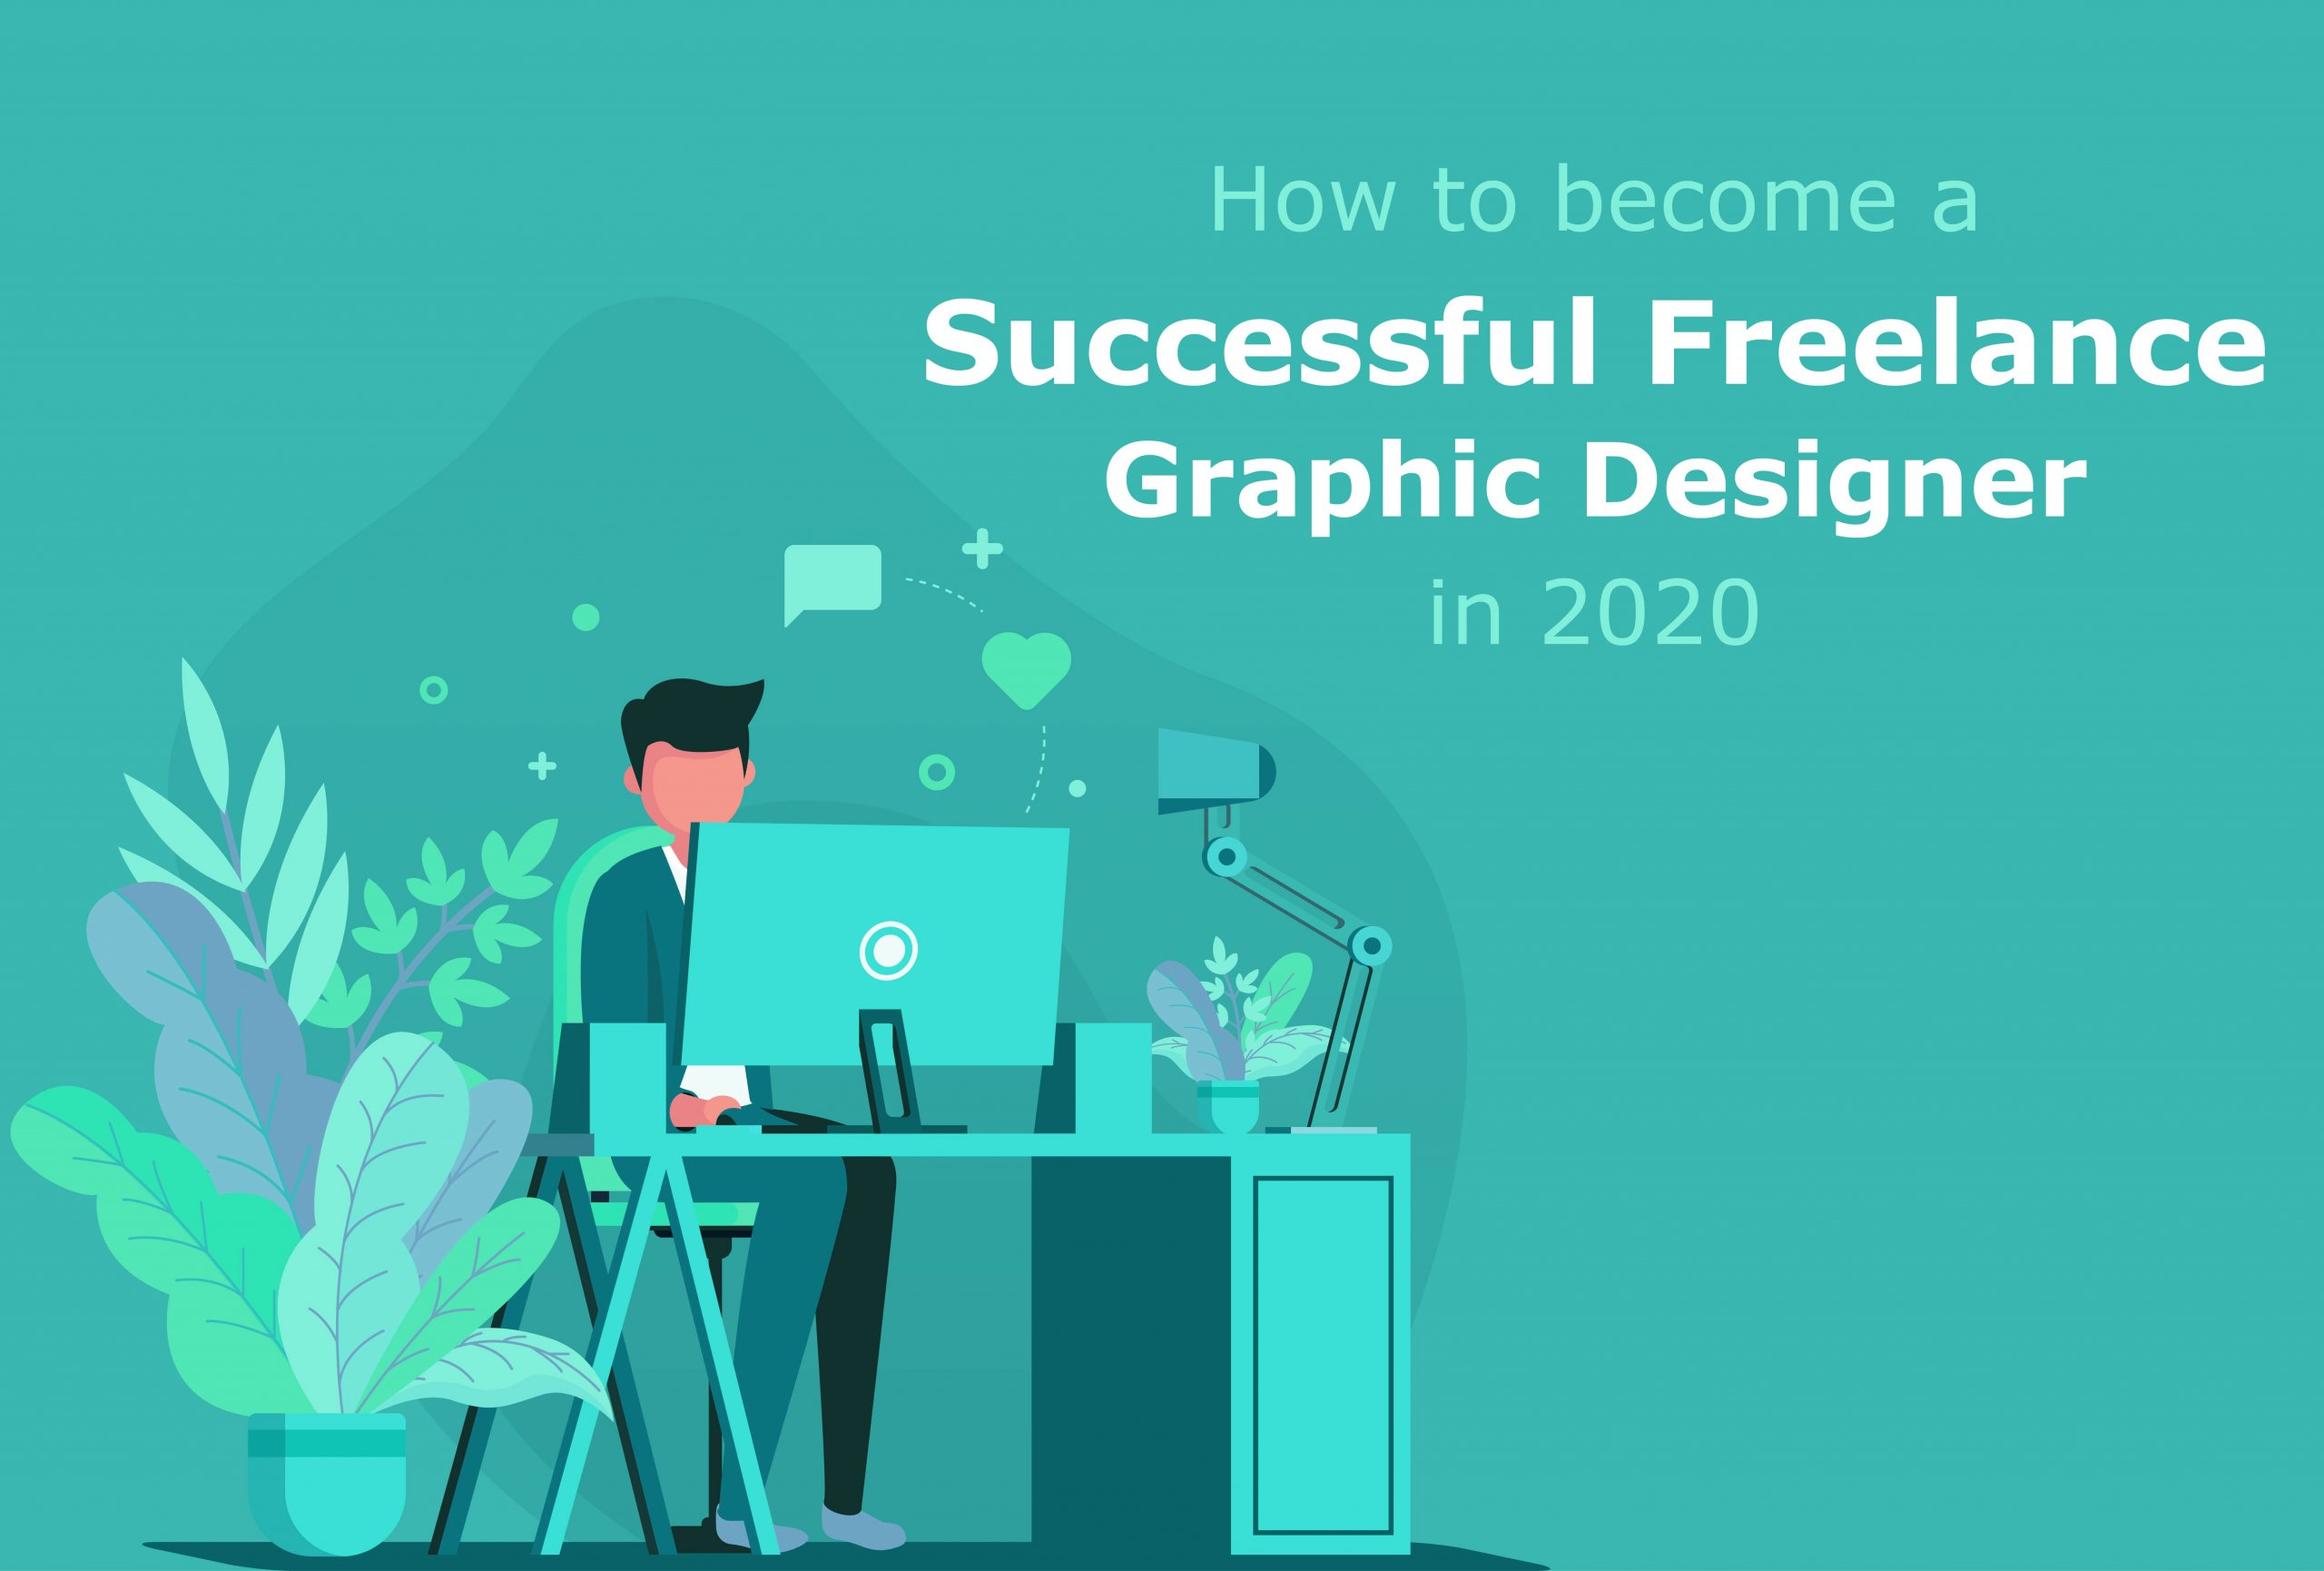 How to become a successful freelance graphic designer in 2020